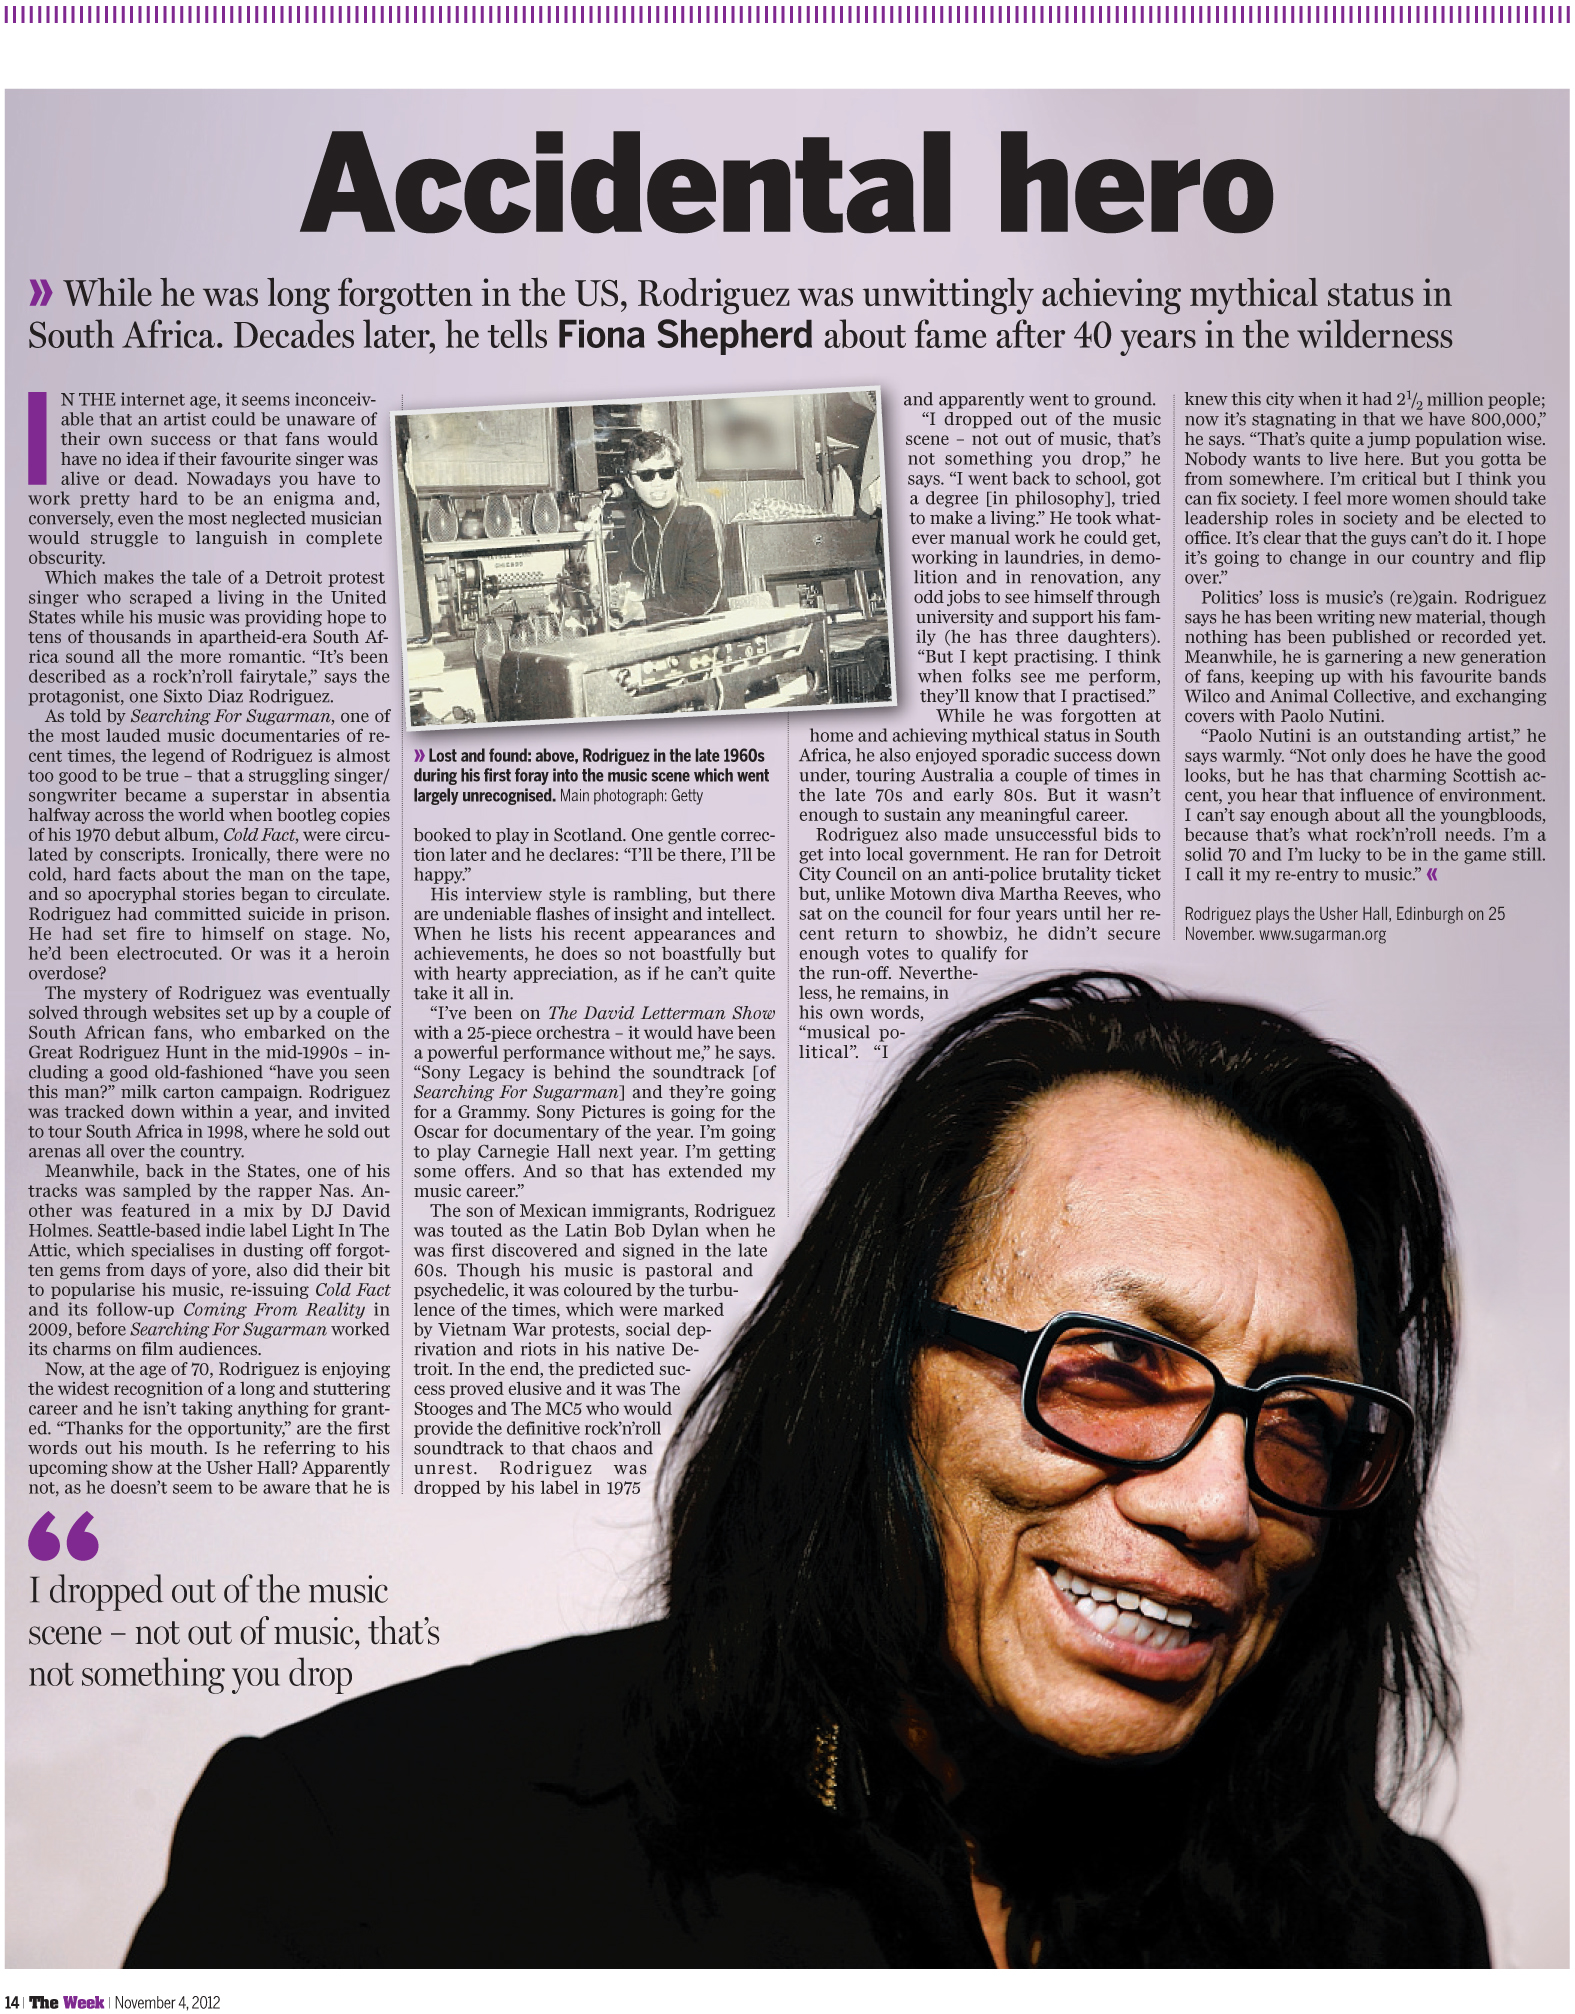 How Rock N Roll Fairytale Led Sixto Diaz Rodriguez To Be One Of